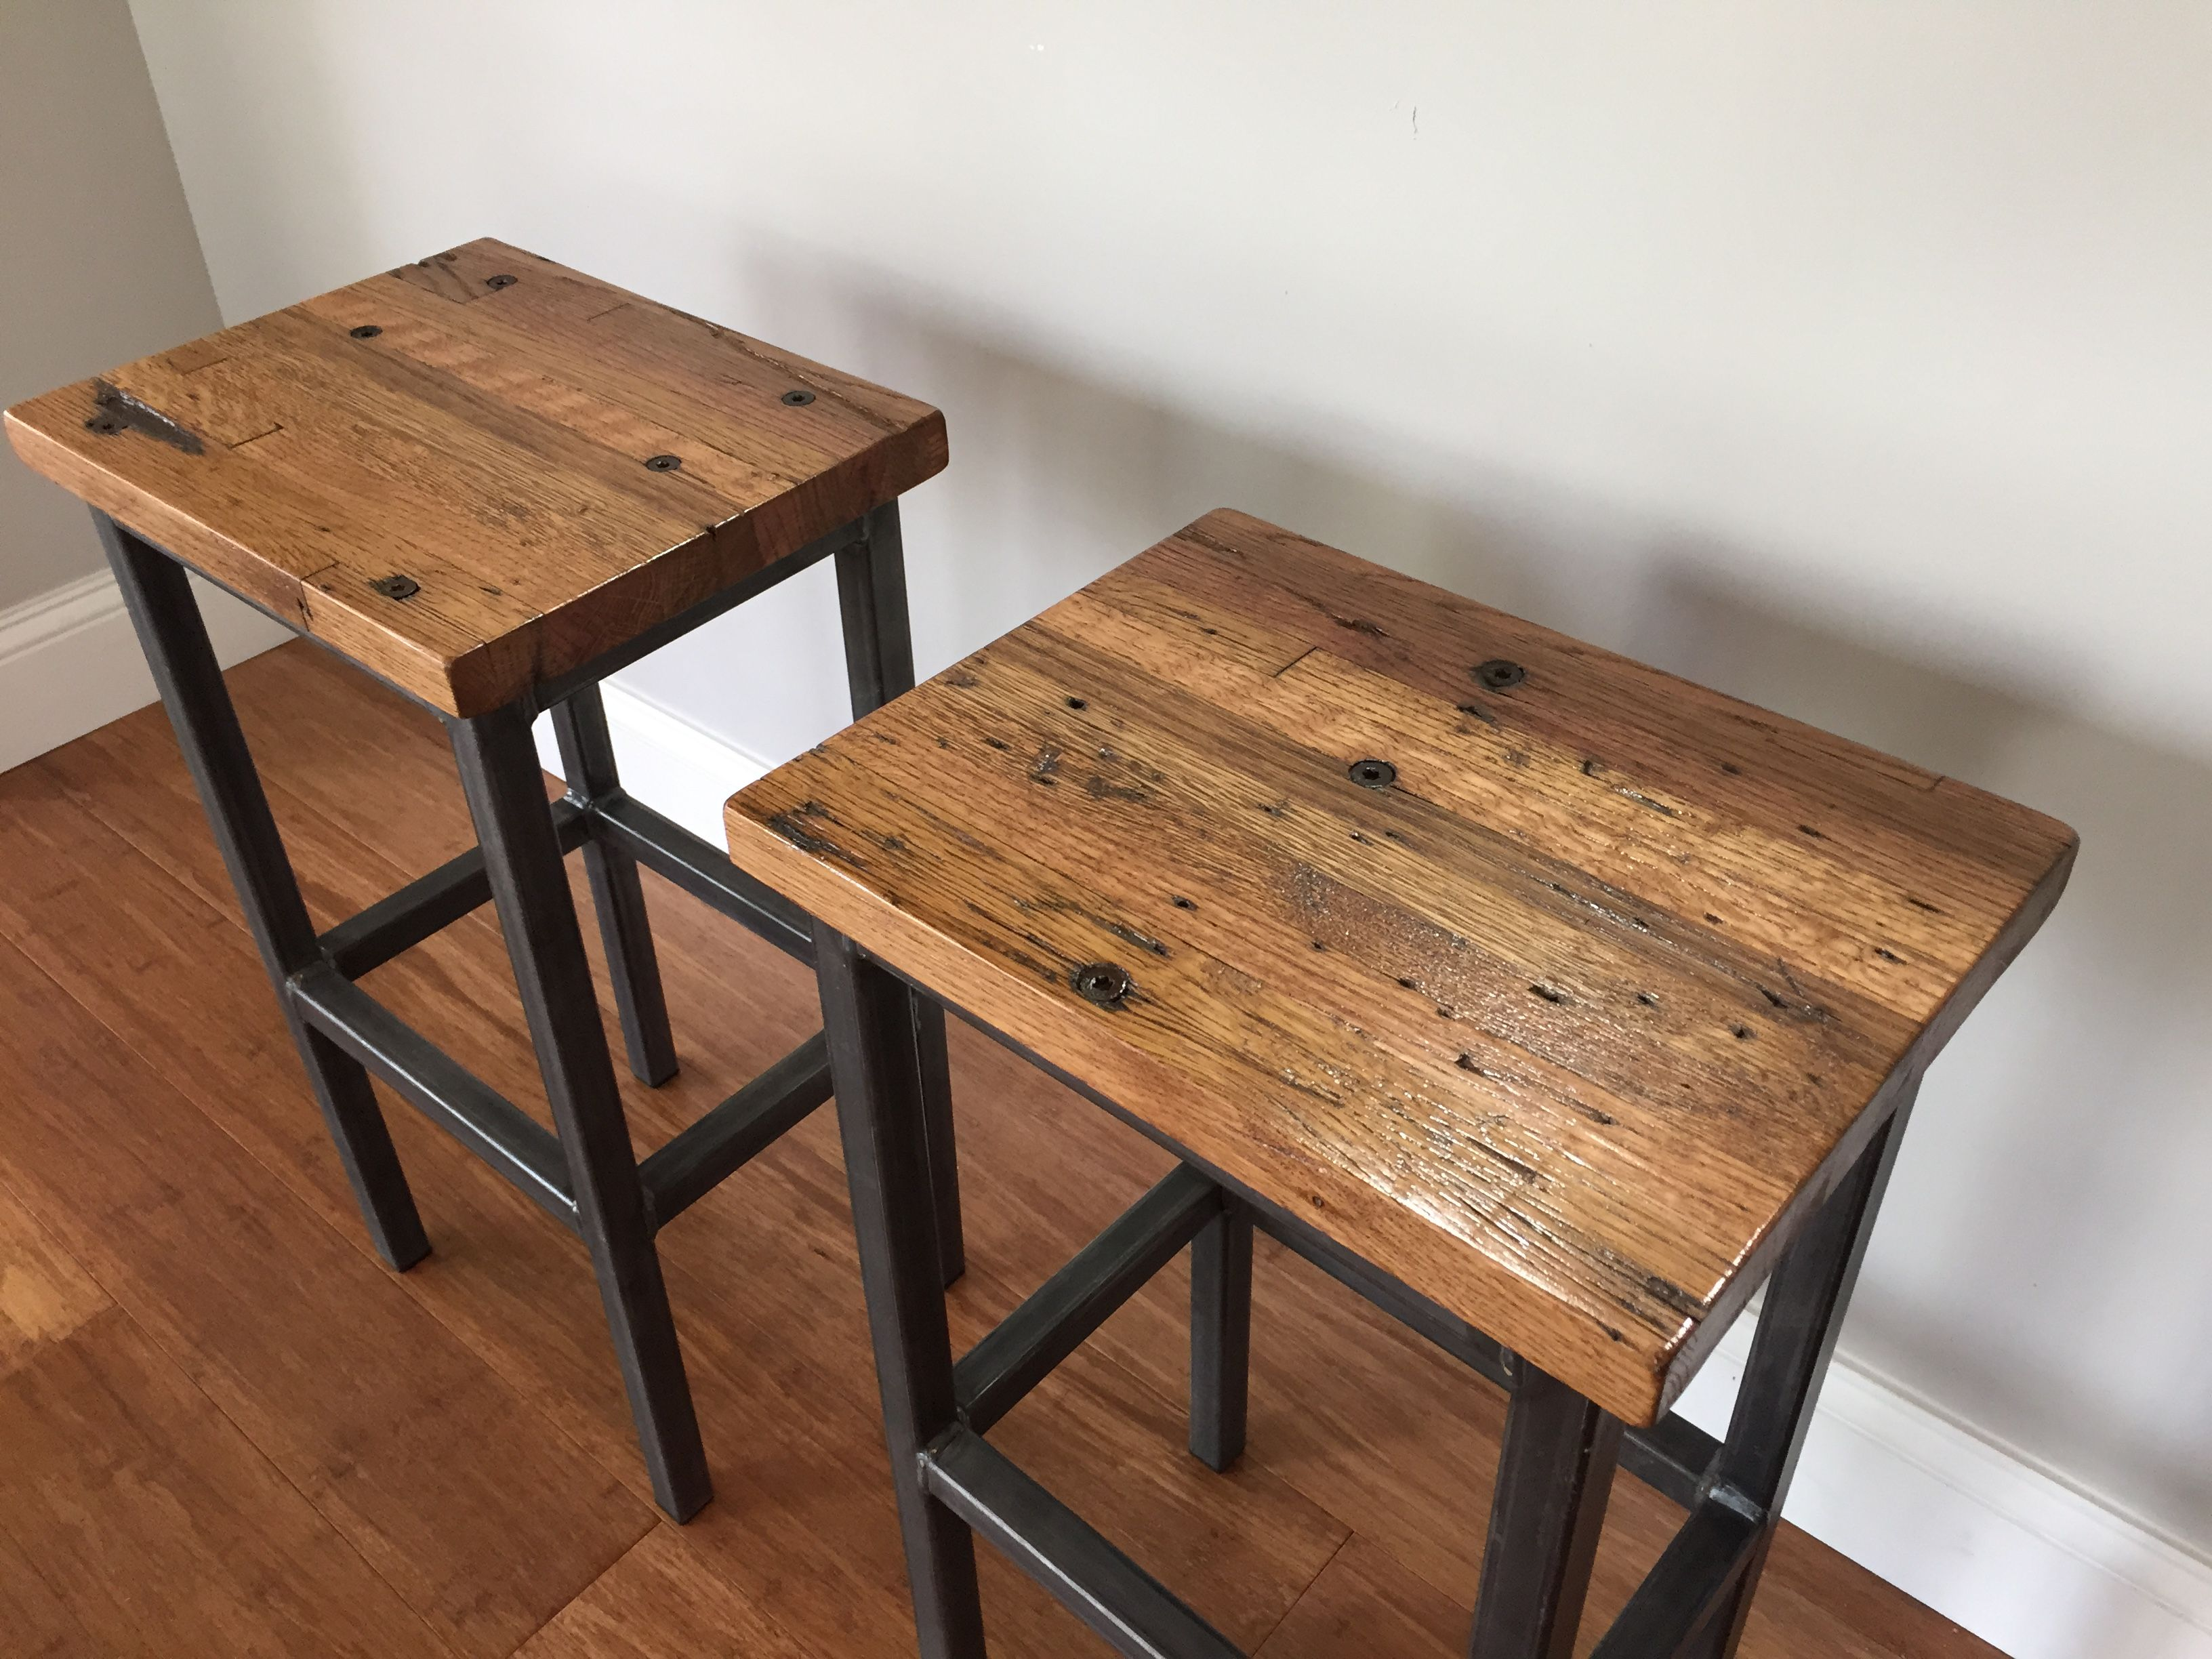 Wooden Furniture Stools ~ Buy a hand crafted reclaimed oak wood bar stools w steel